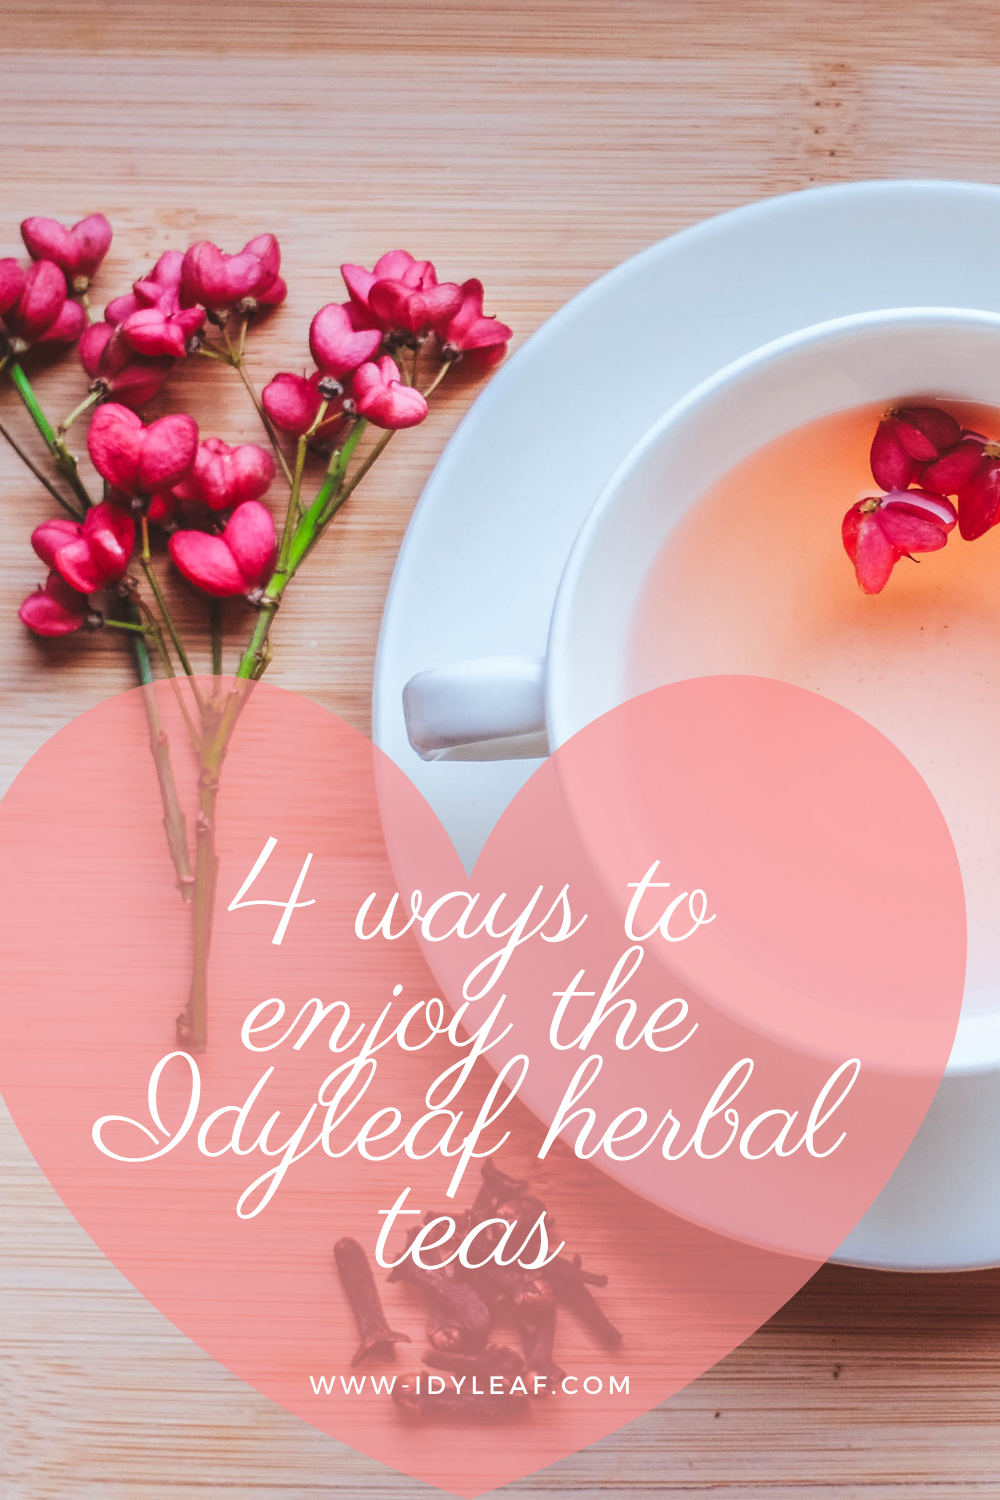 the photo shows a cup of idyleaf hibiscus tea